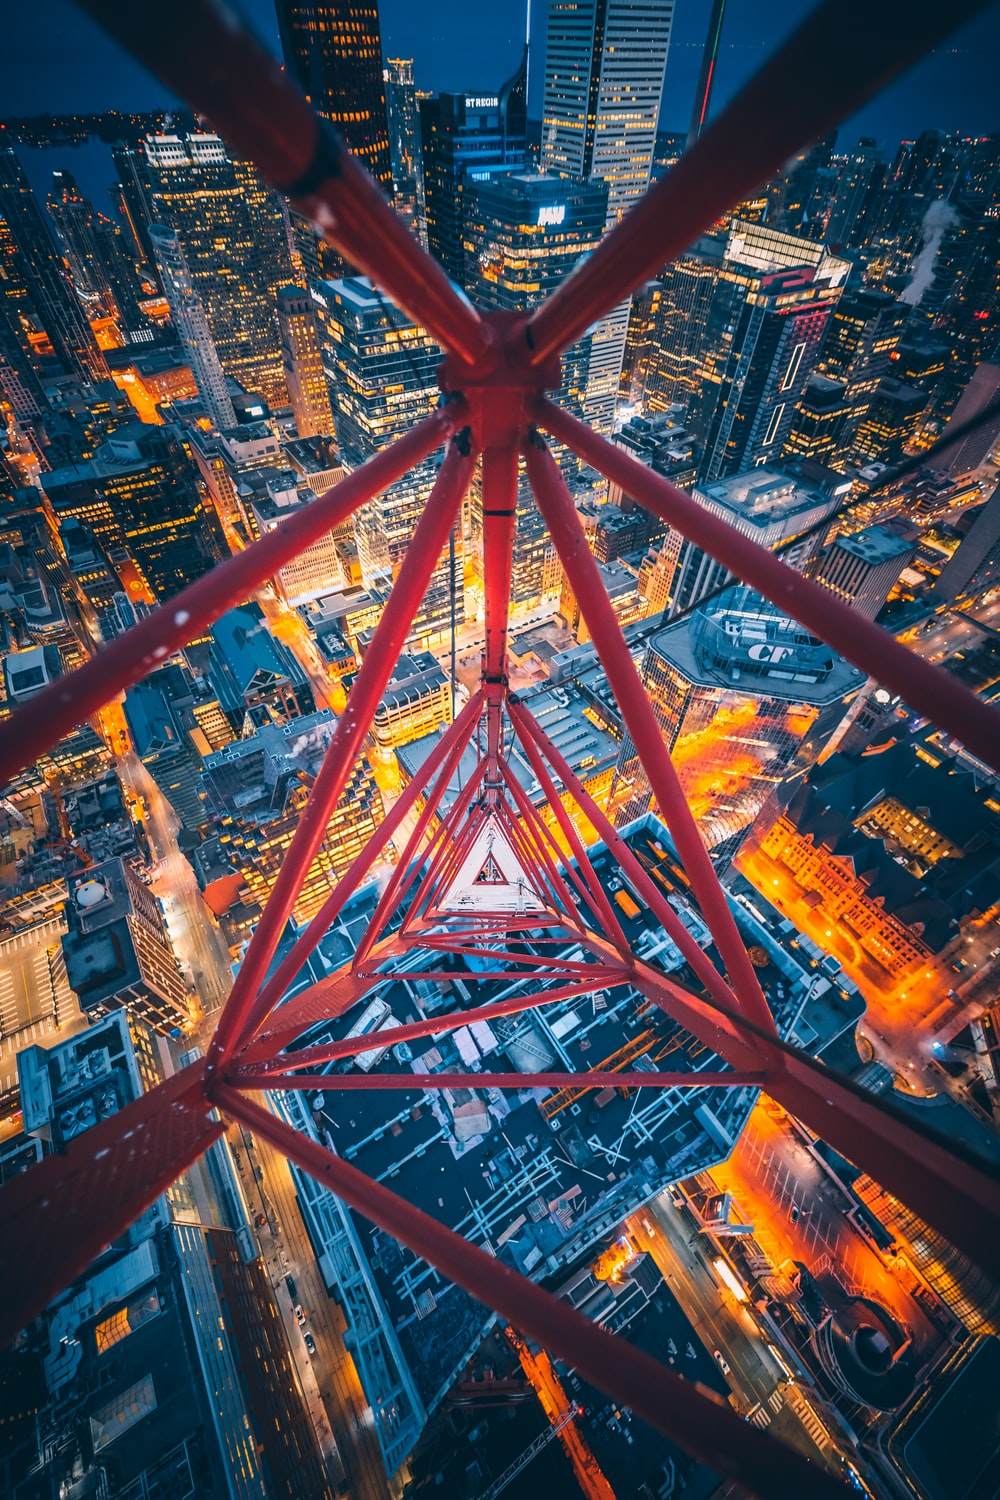 red metal tower